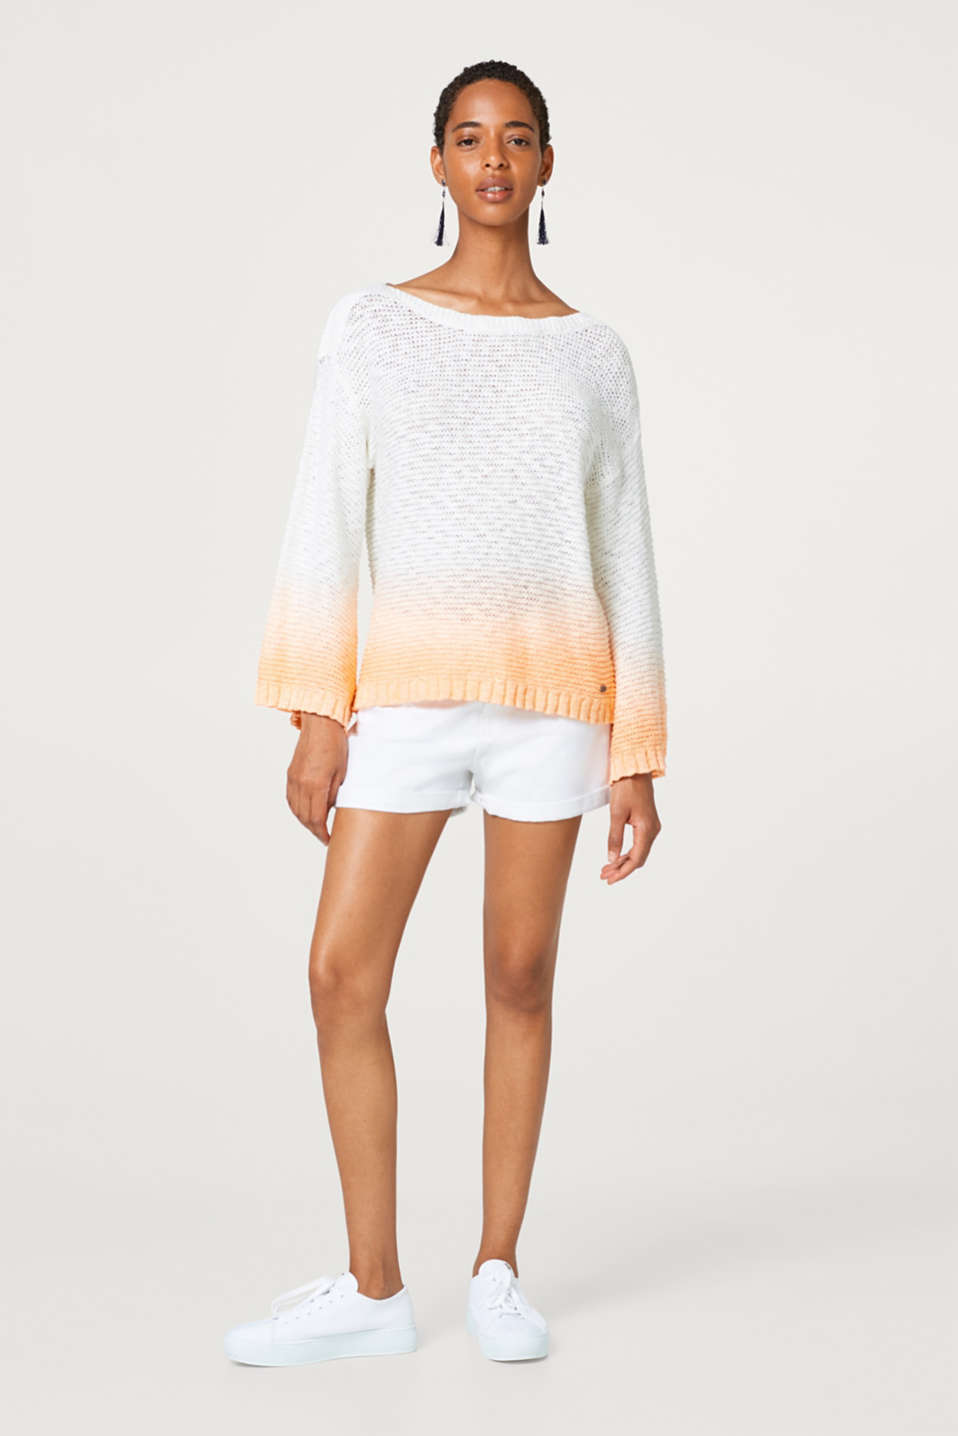 Textured jumper with colour gradation, made of 100% cotton